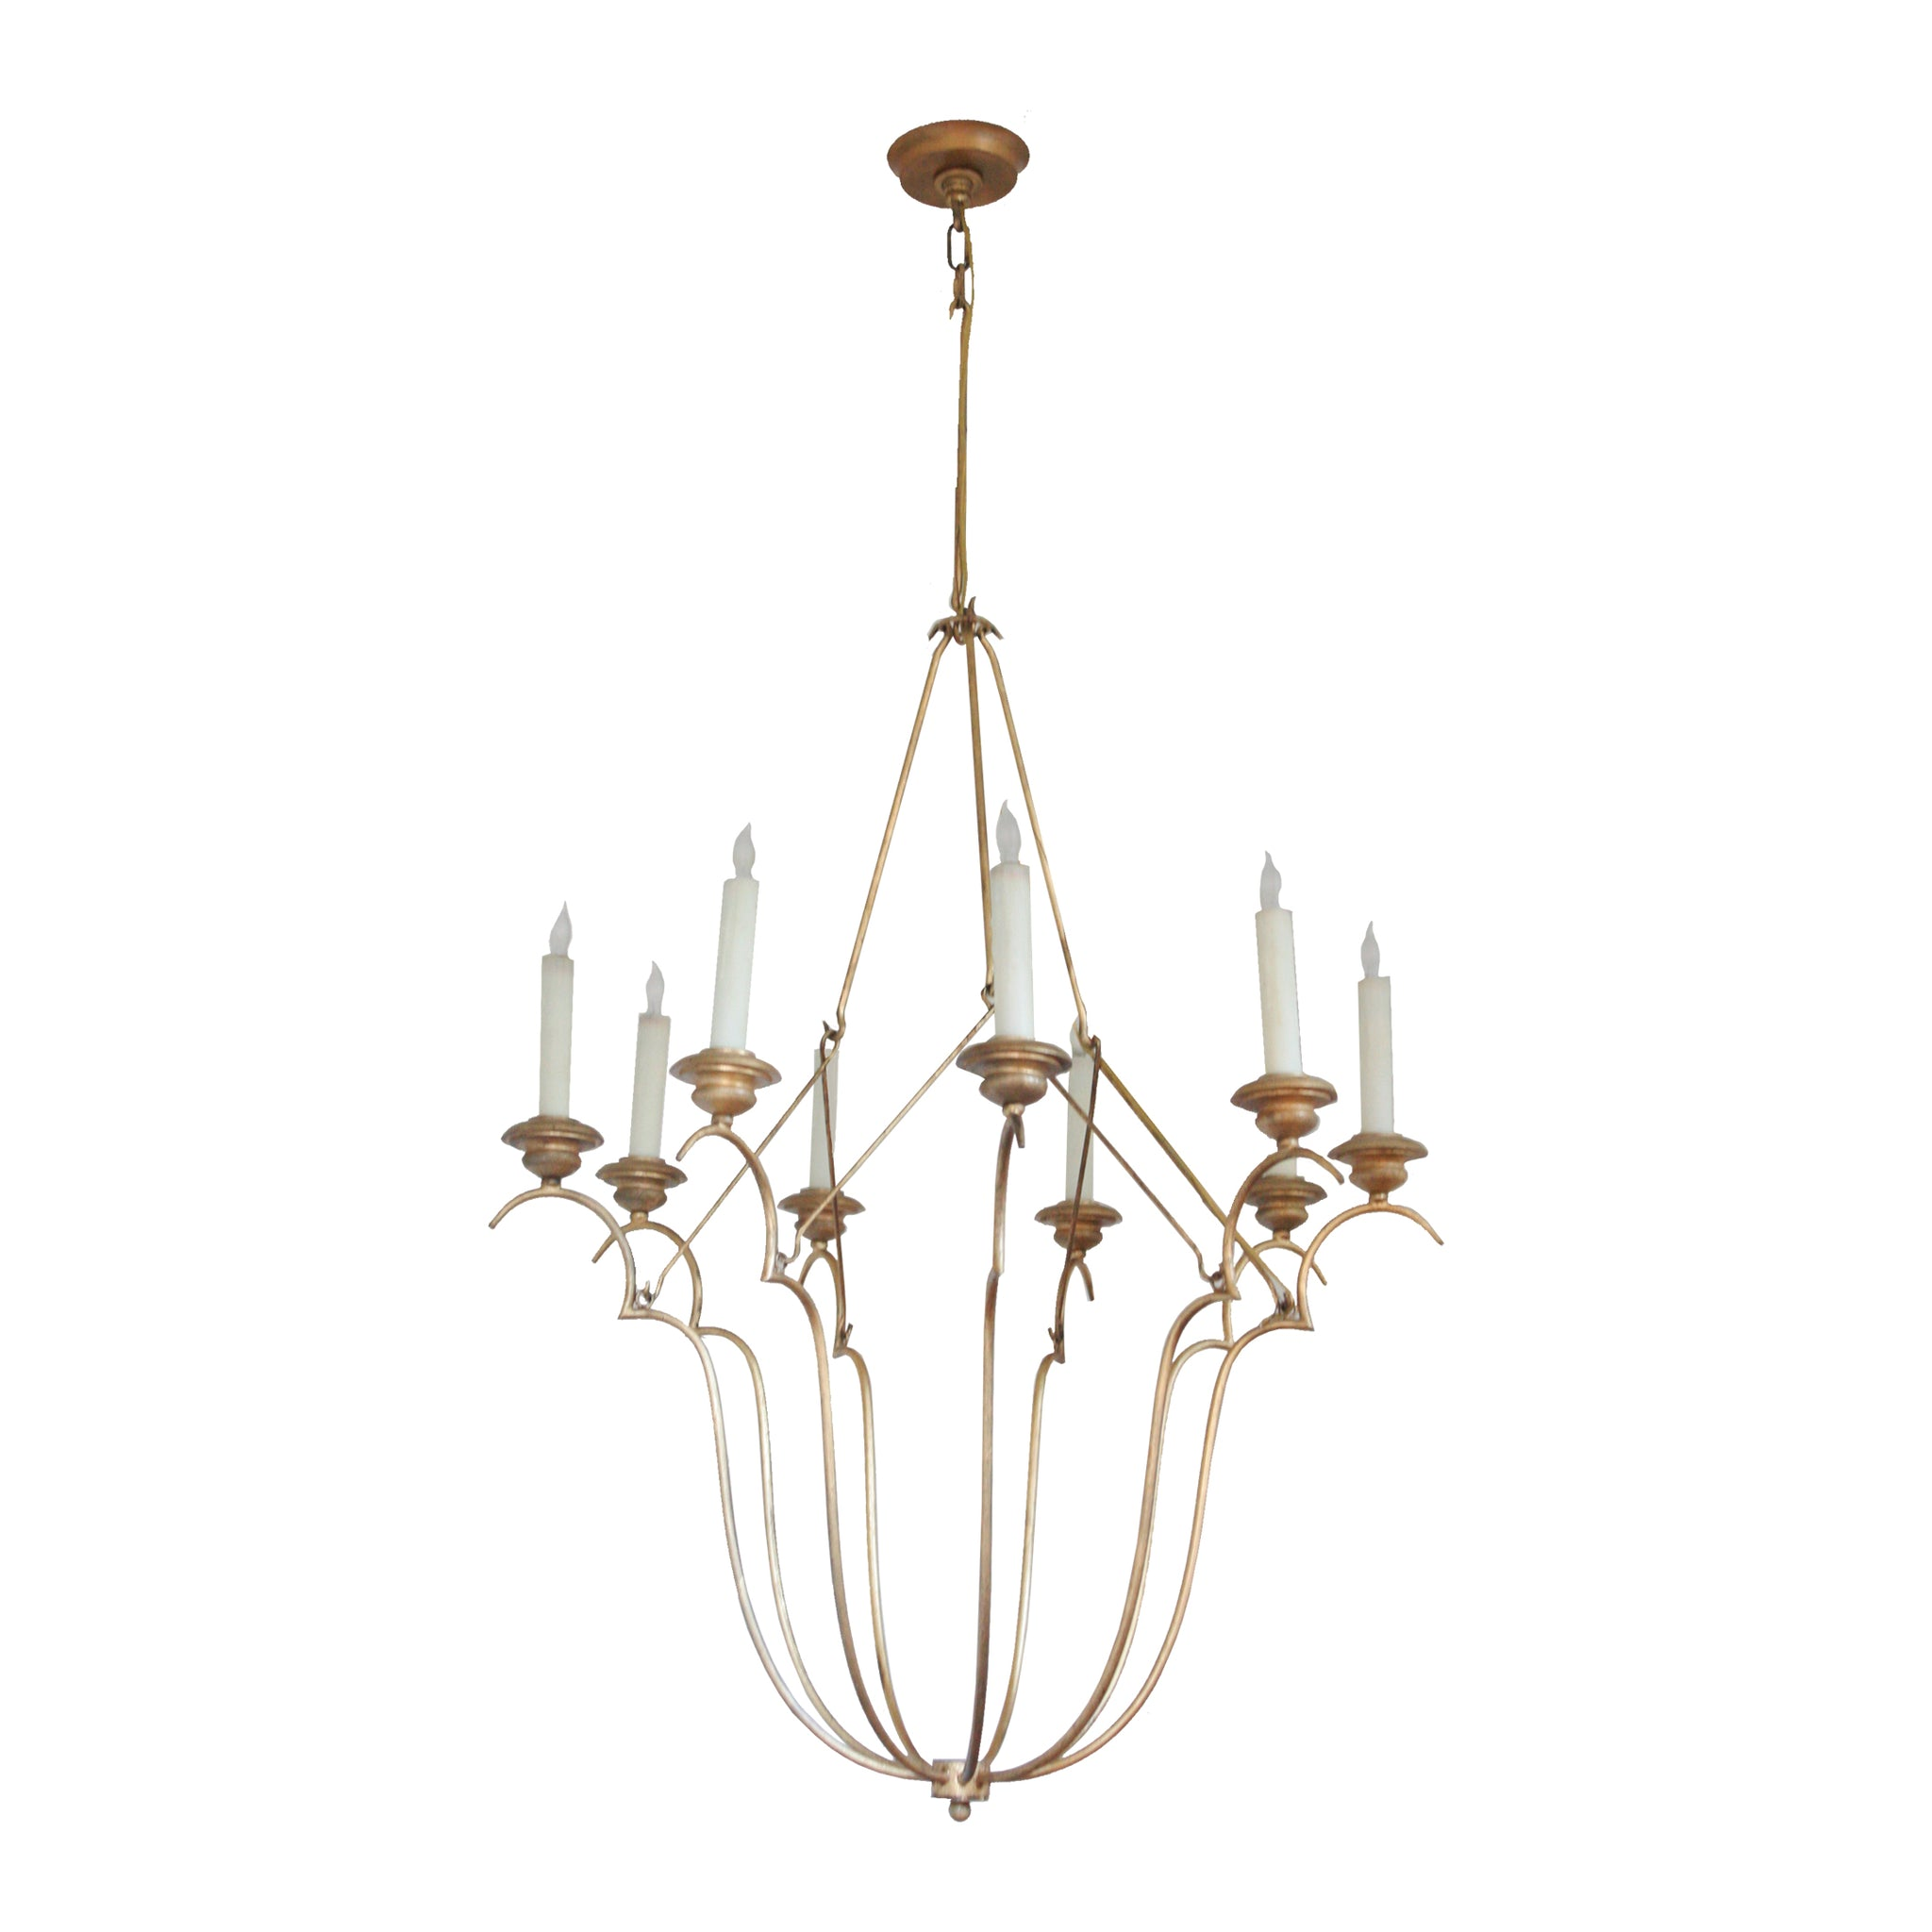 Belvedere Chandelier in Gilded Iron Wax with Natural Paper Shade